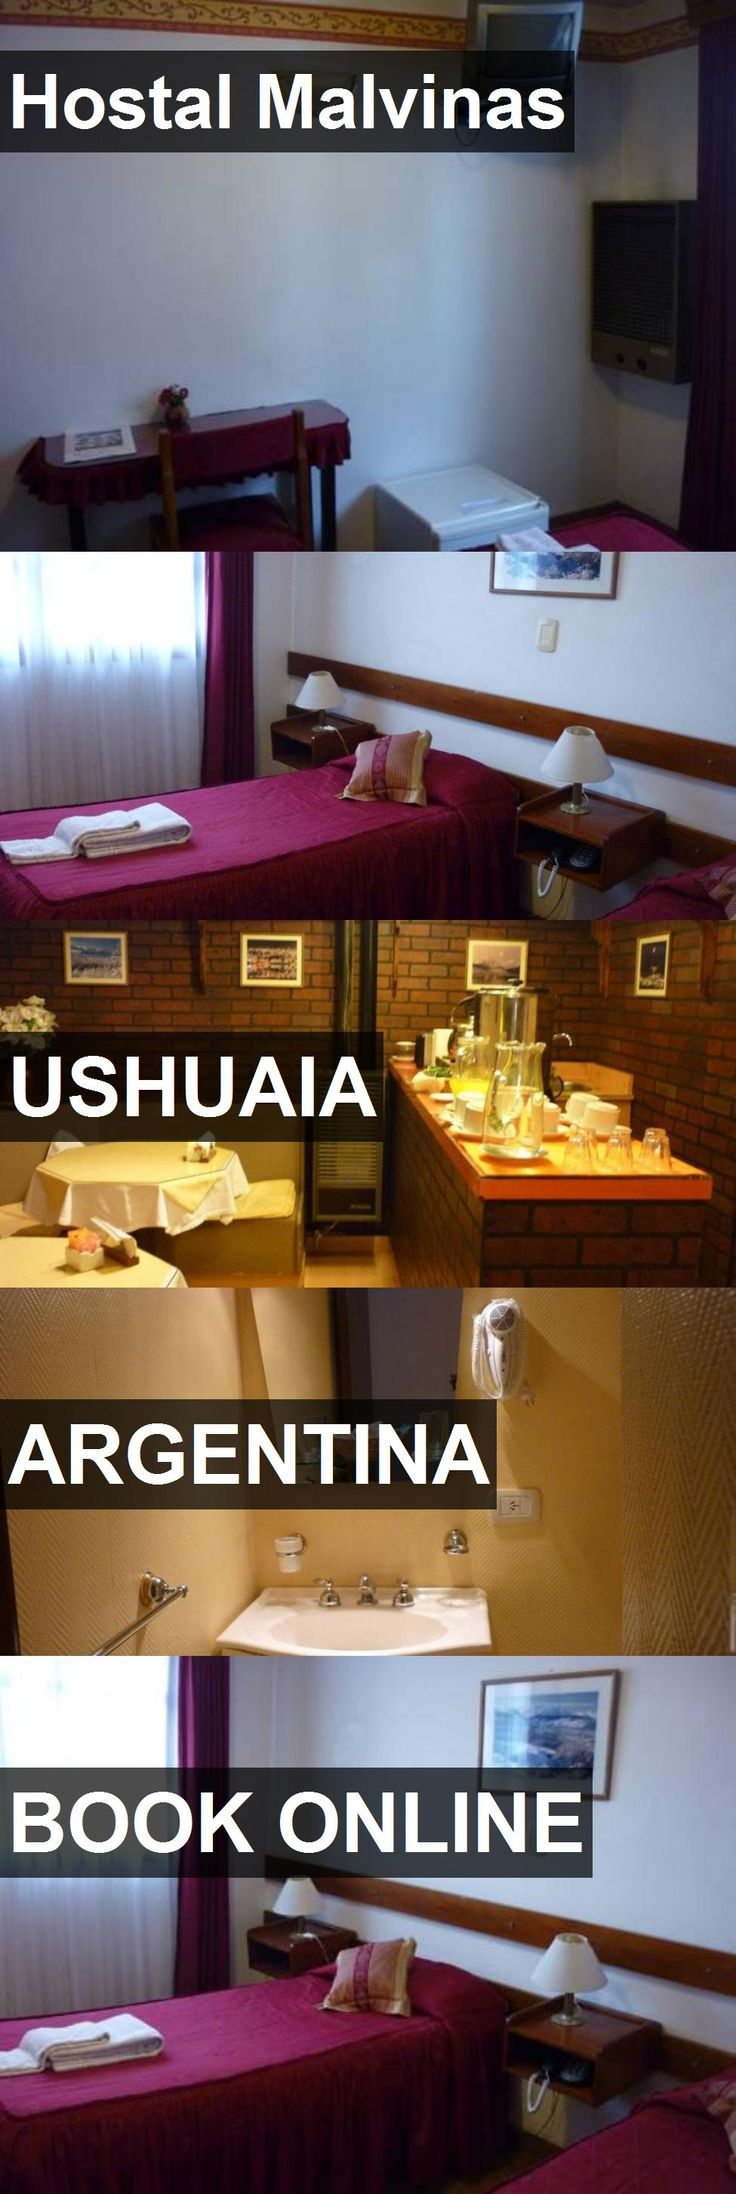 Hotel Hostal Malvinas in Ushuaia, Argentina. For more information, photos, reviews and best prices please follow the link. #Argentina #Ushuaia #HostalMalvinas #hotel #travel #vacation